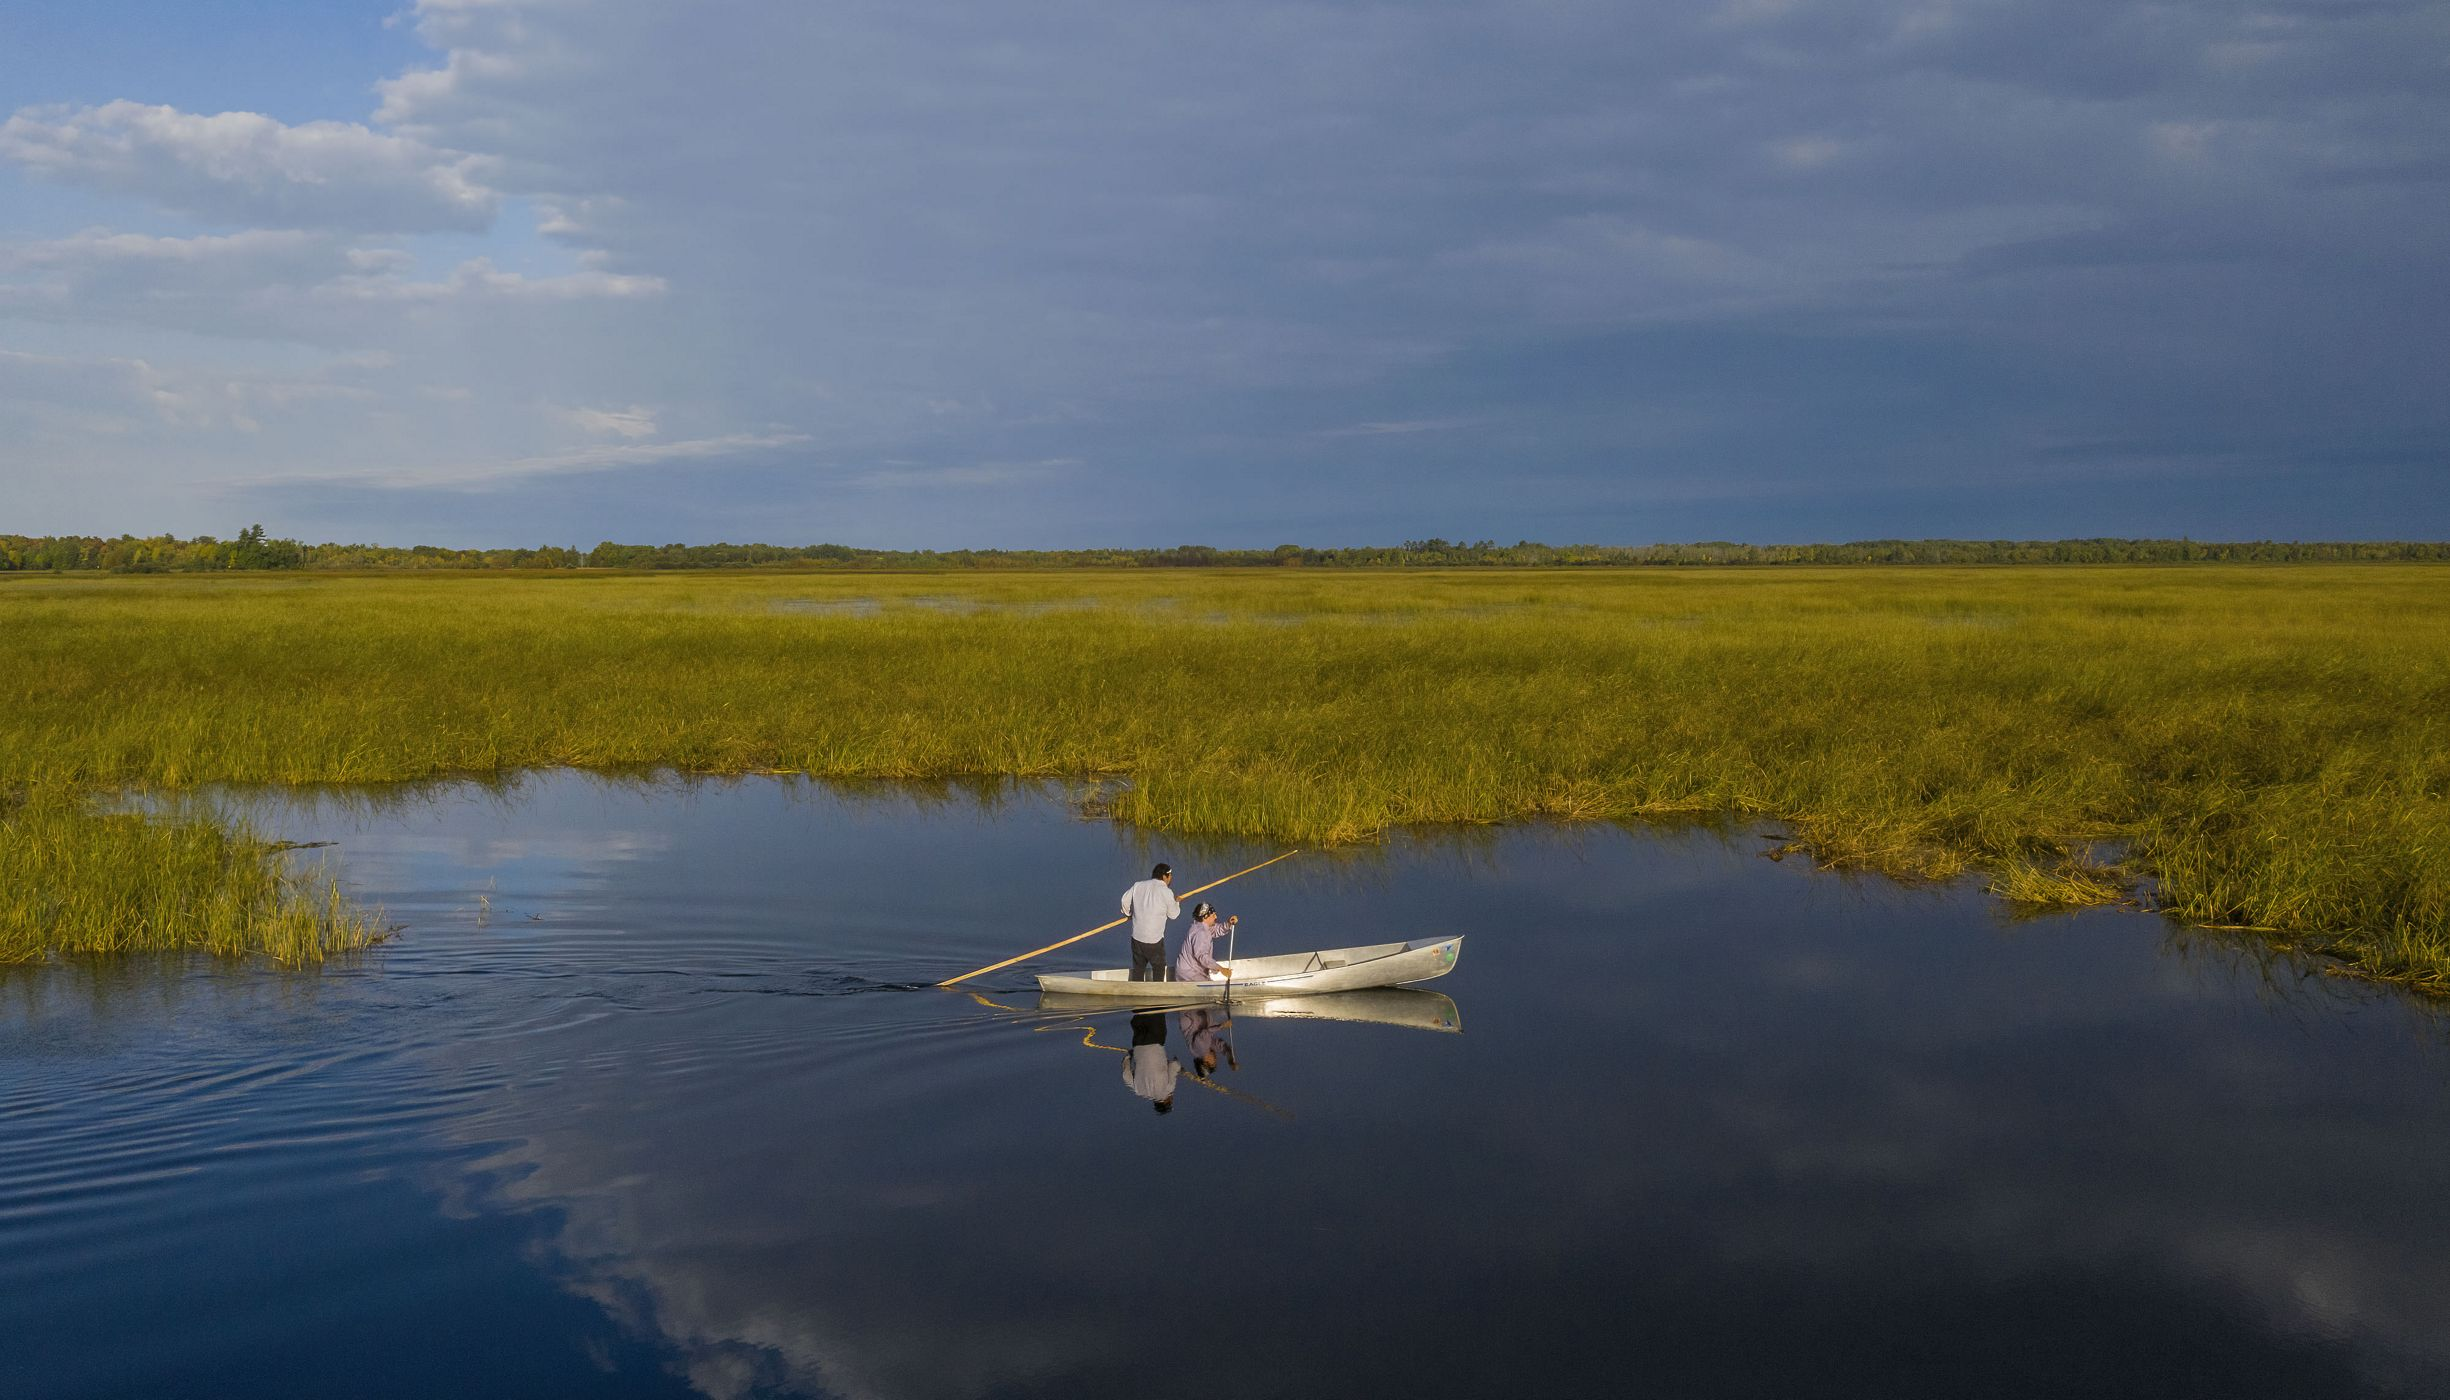 Two people in a canoe float on a lake surrounded by tall wild rice.